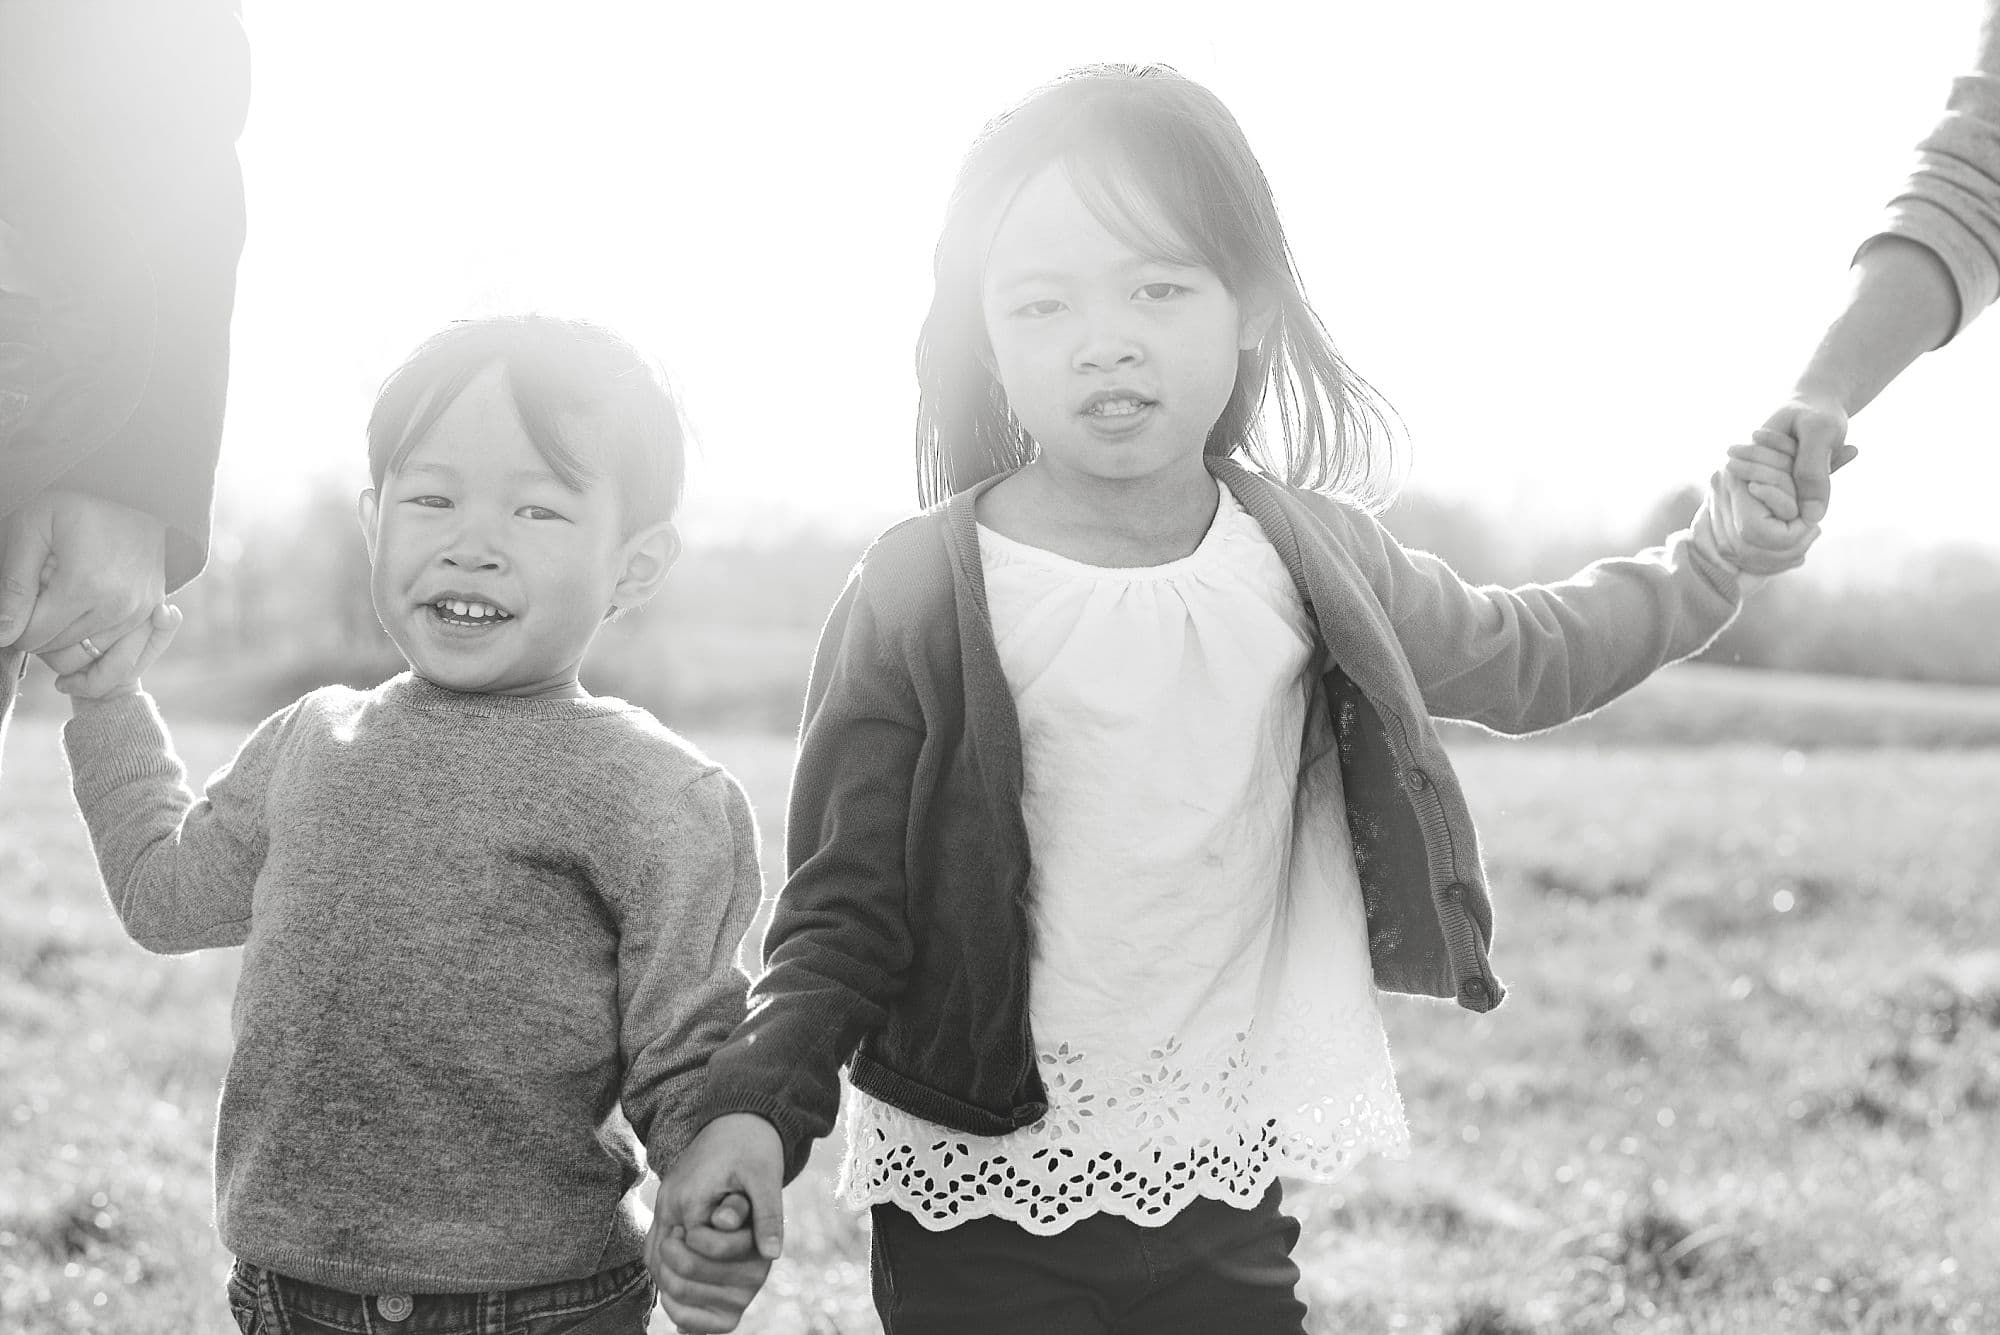 Boy and girl siblings holding hands in black and white